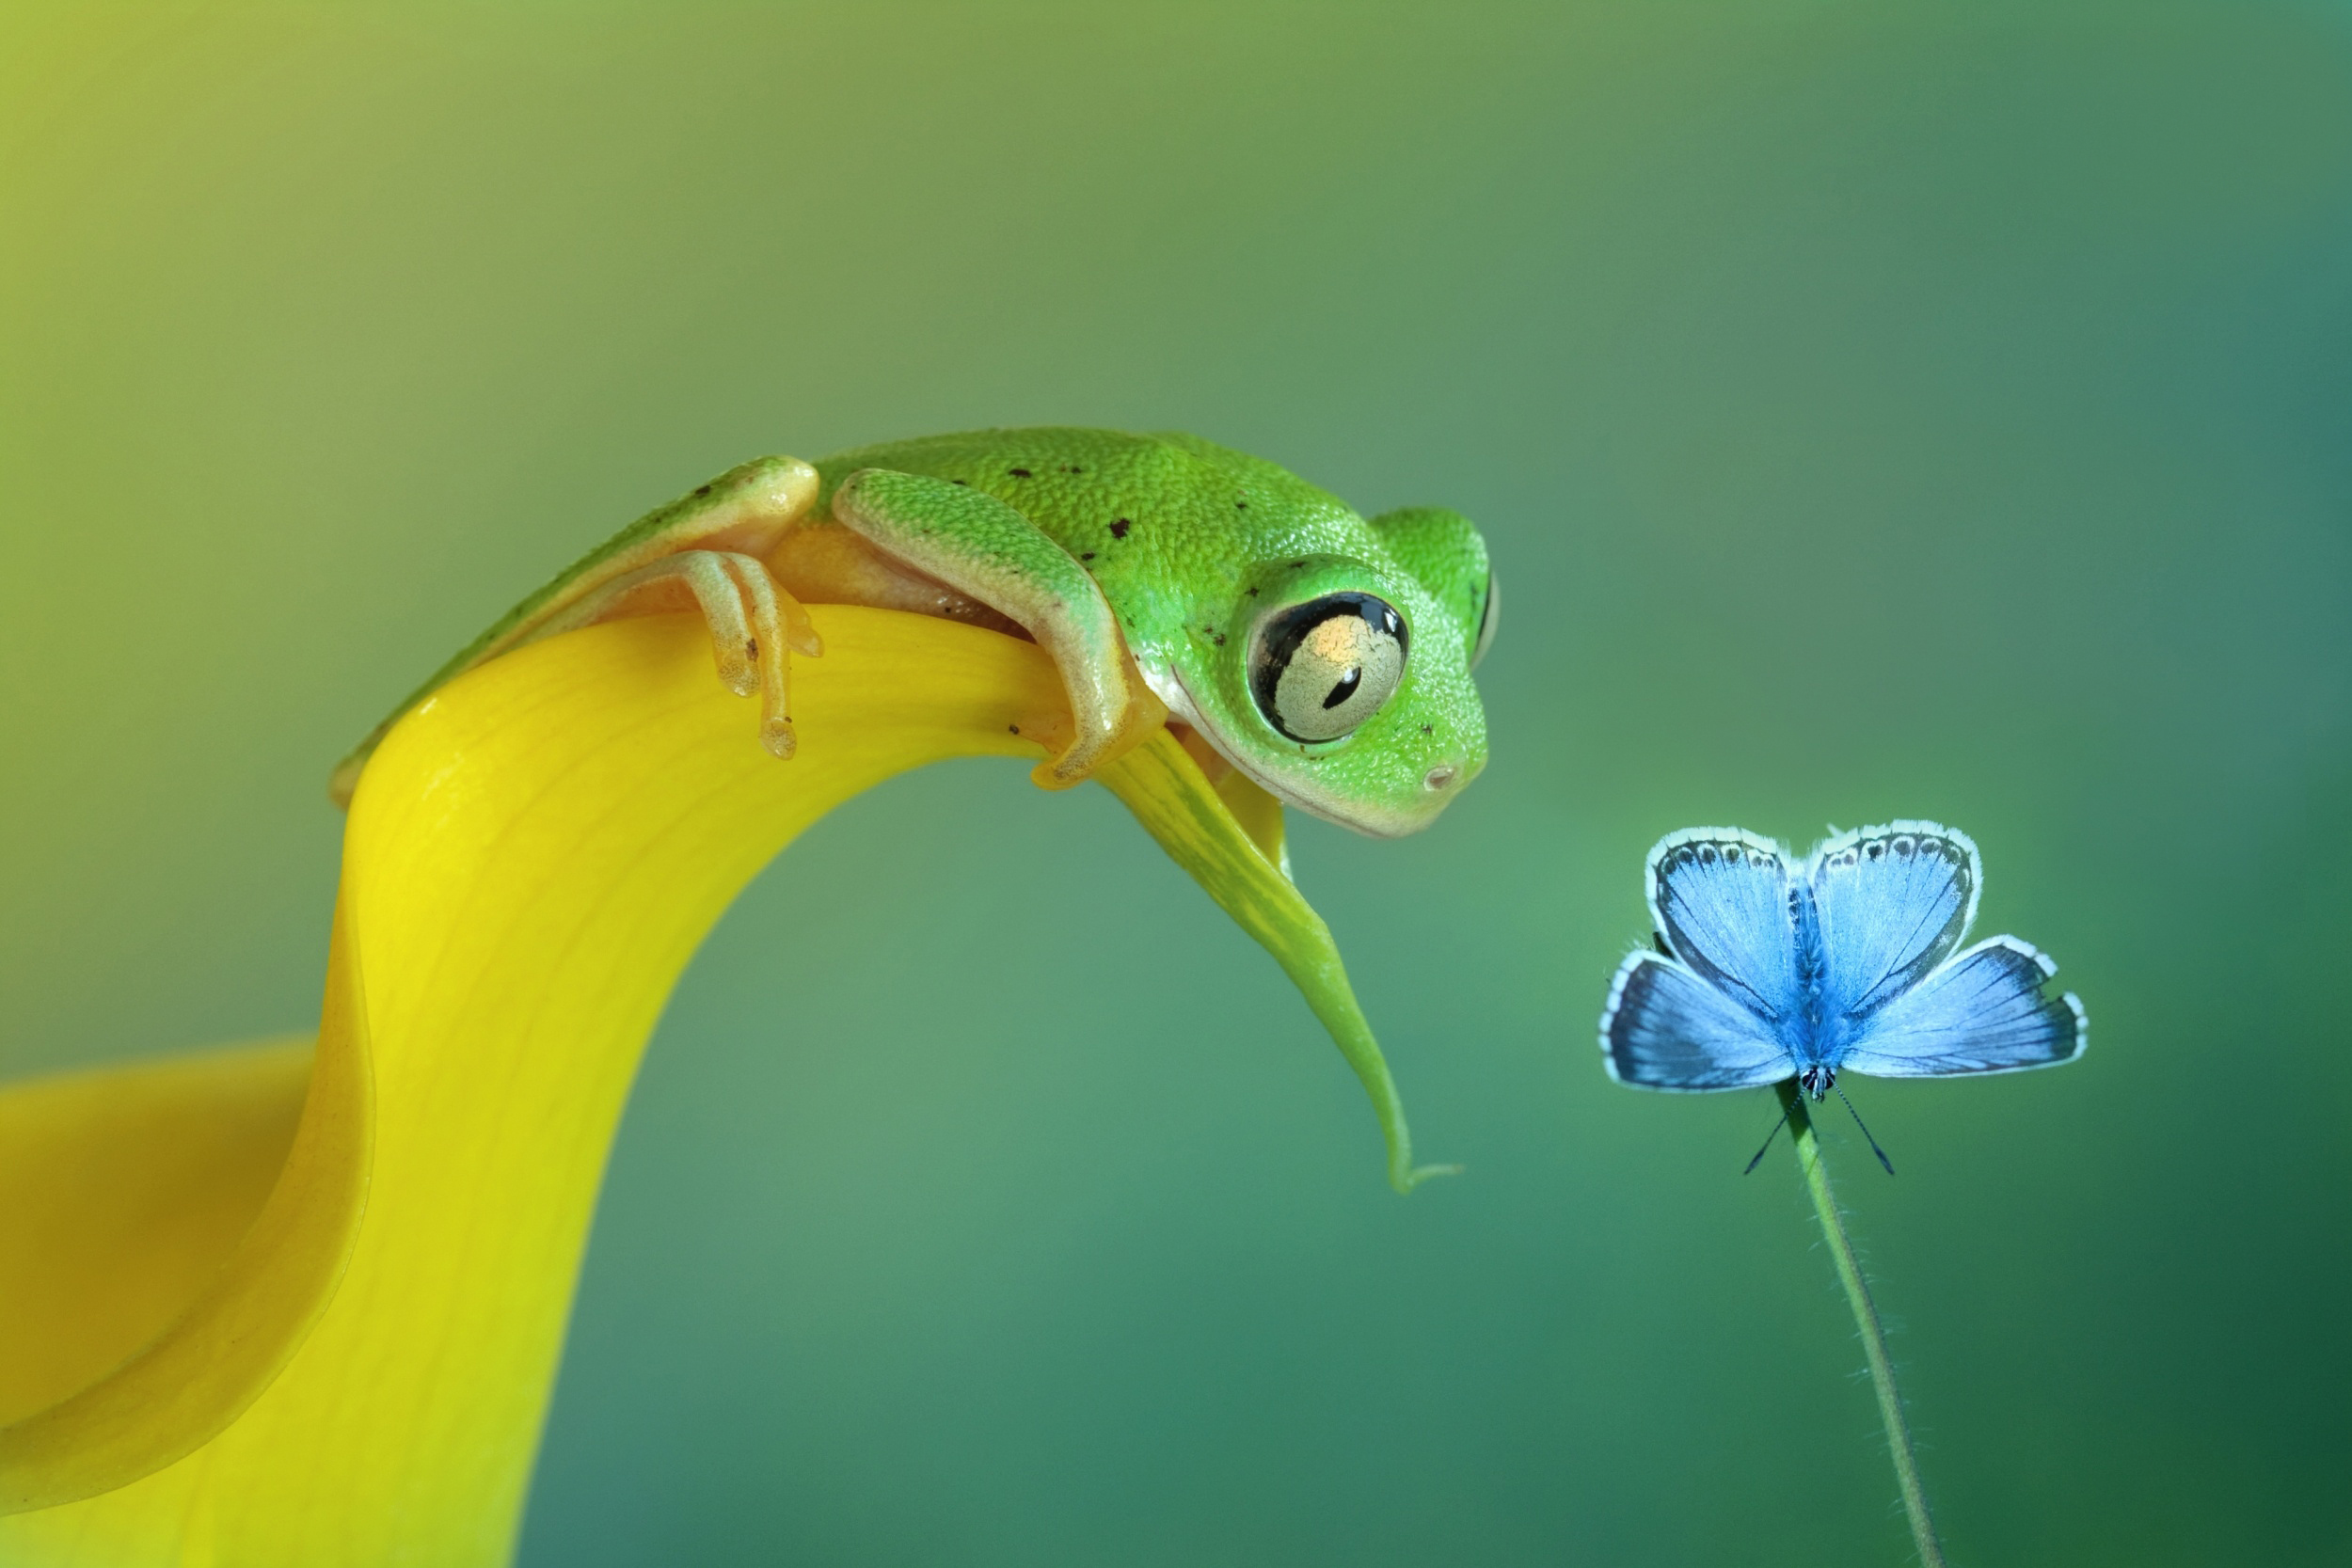 Green frog watches blue butterfly